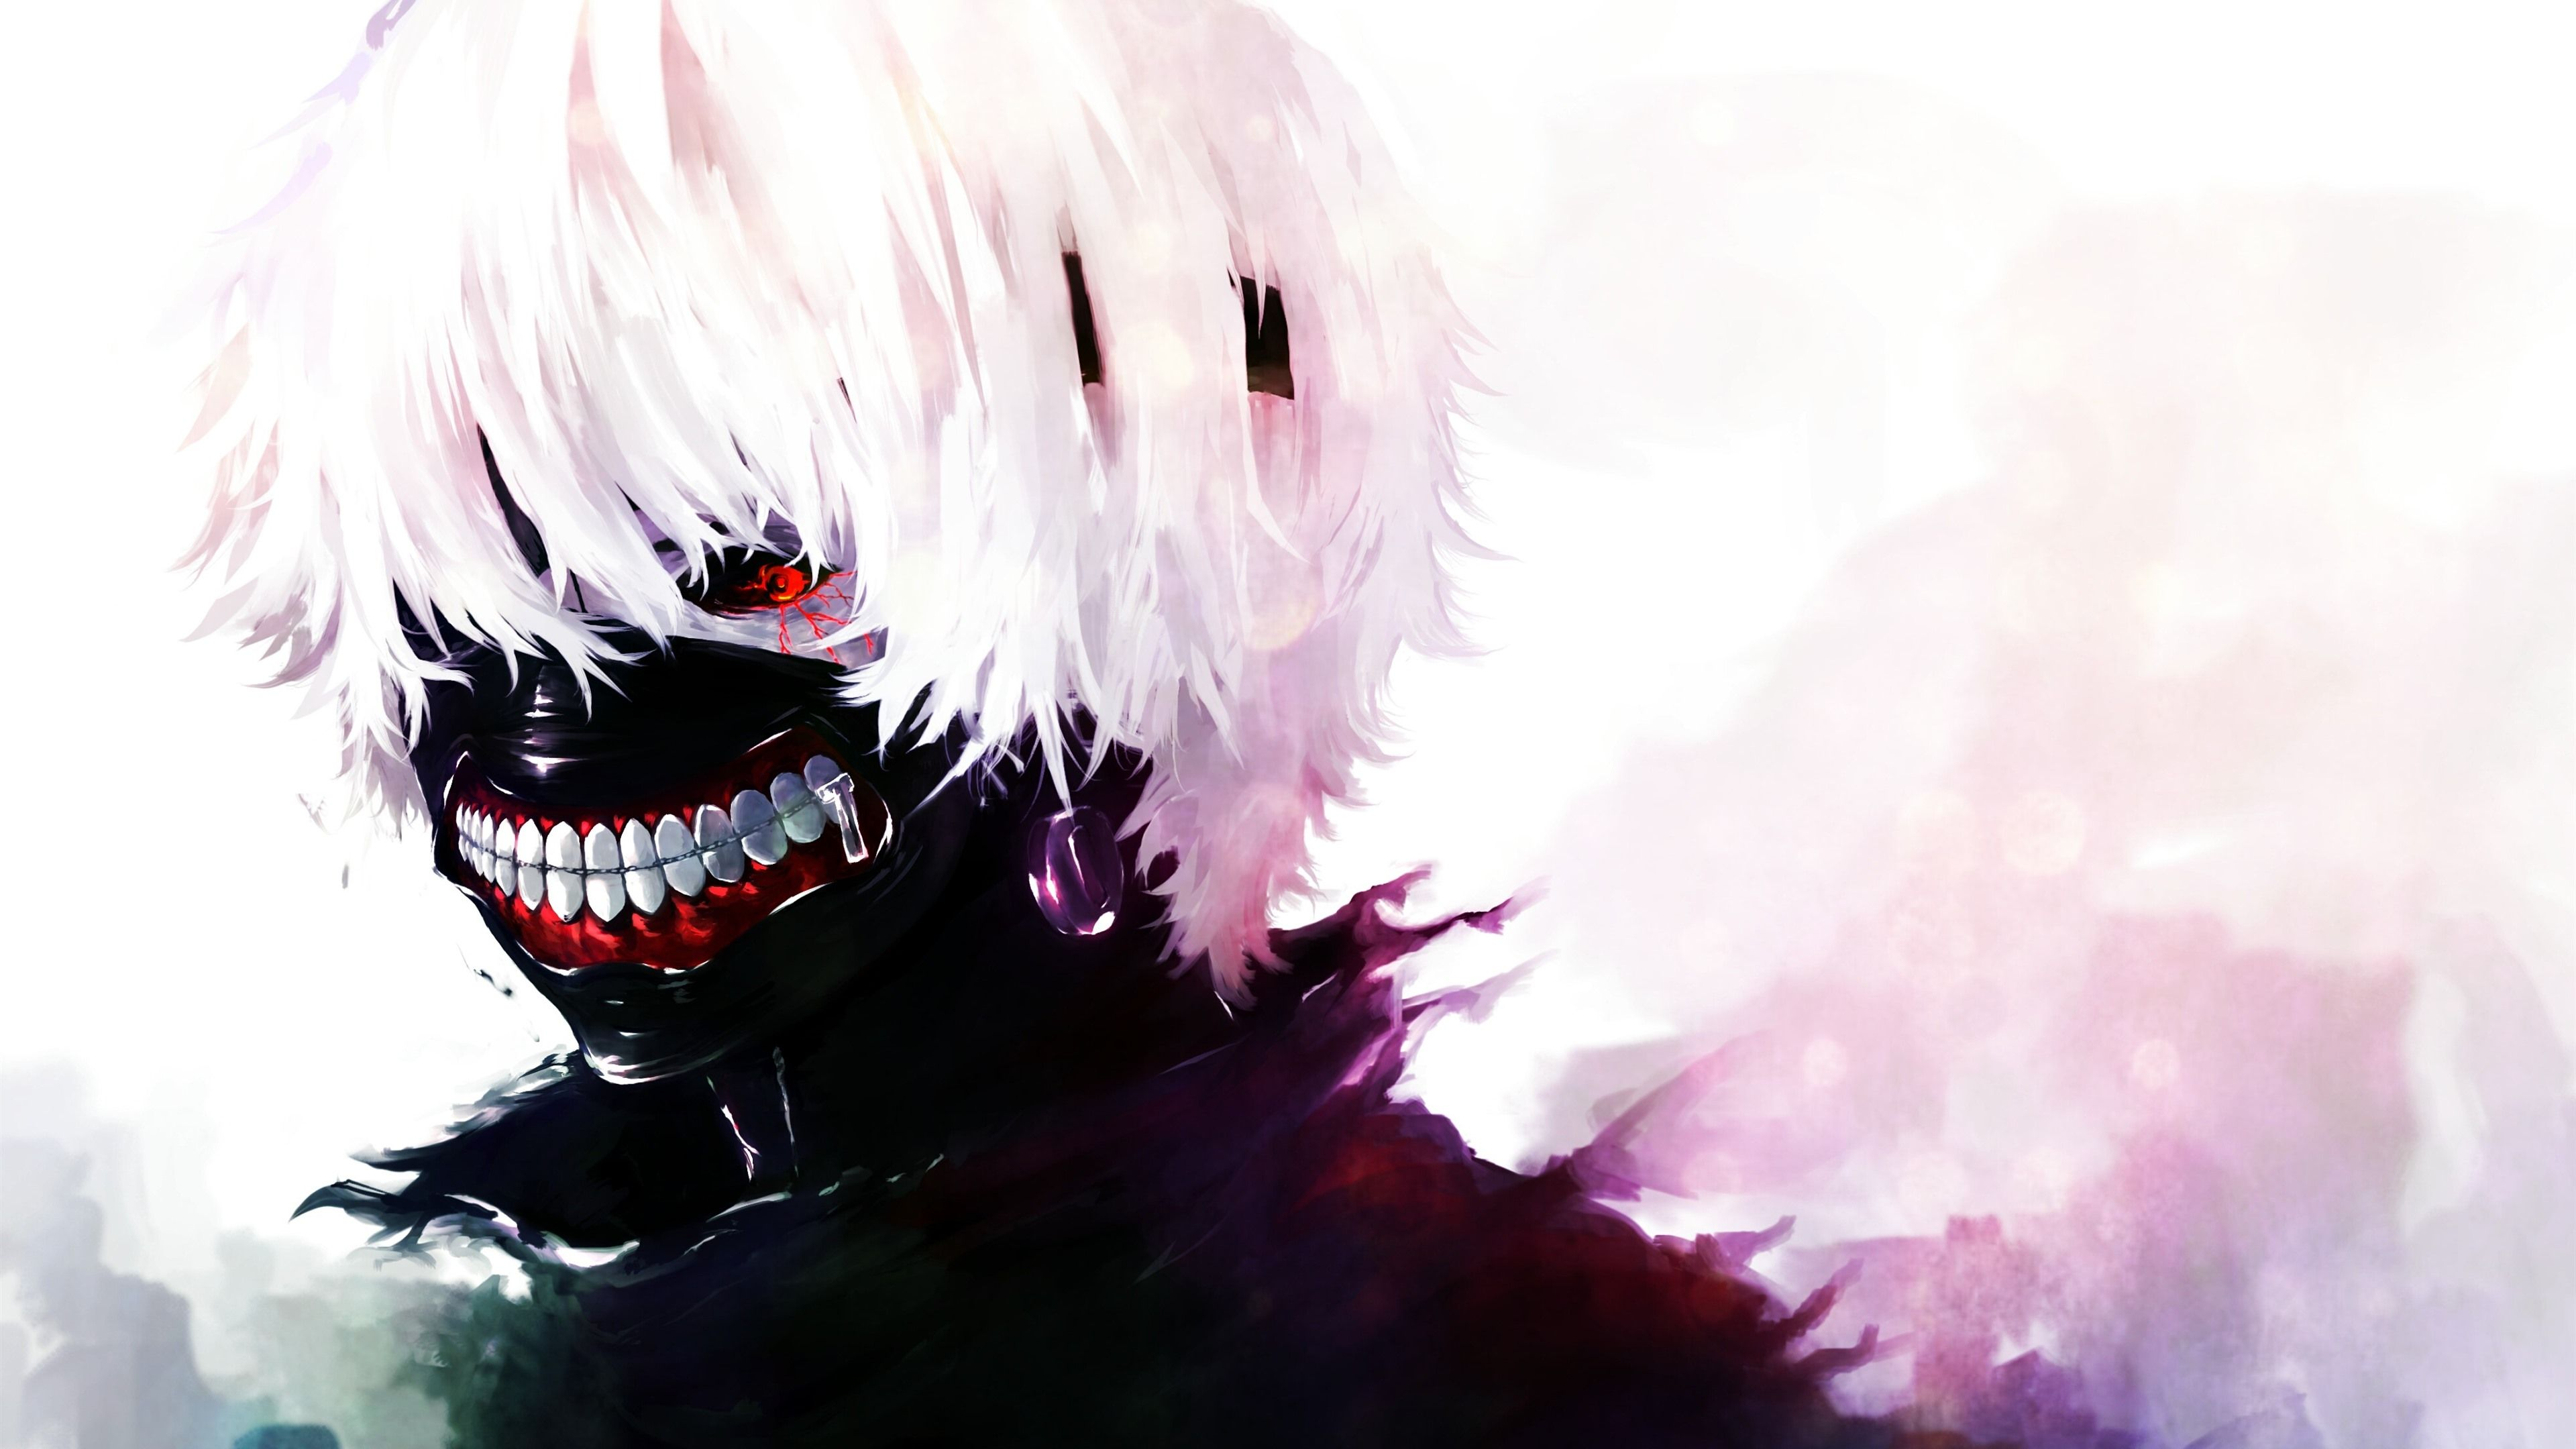 A collection of the top 48 tokyo ghoul live wallpapers and backgrounds available for download for free. Tokyo Ghoul Fondos De Pantalla 4k Para Pc